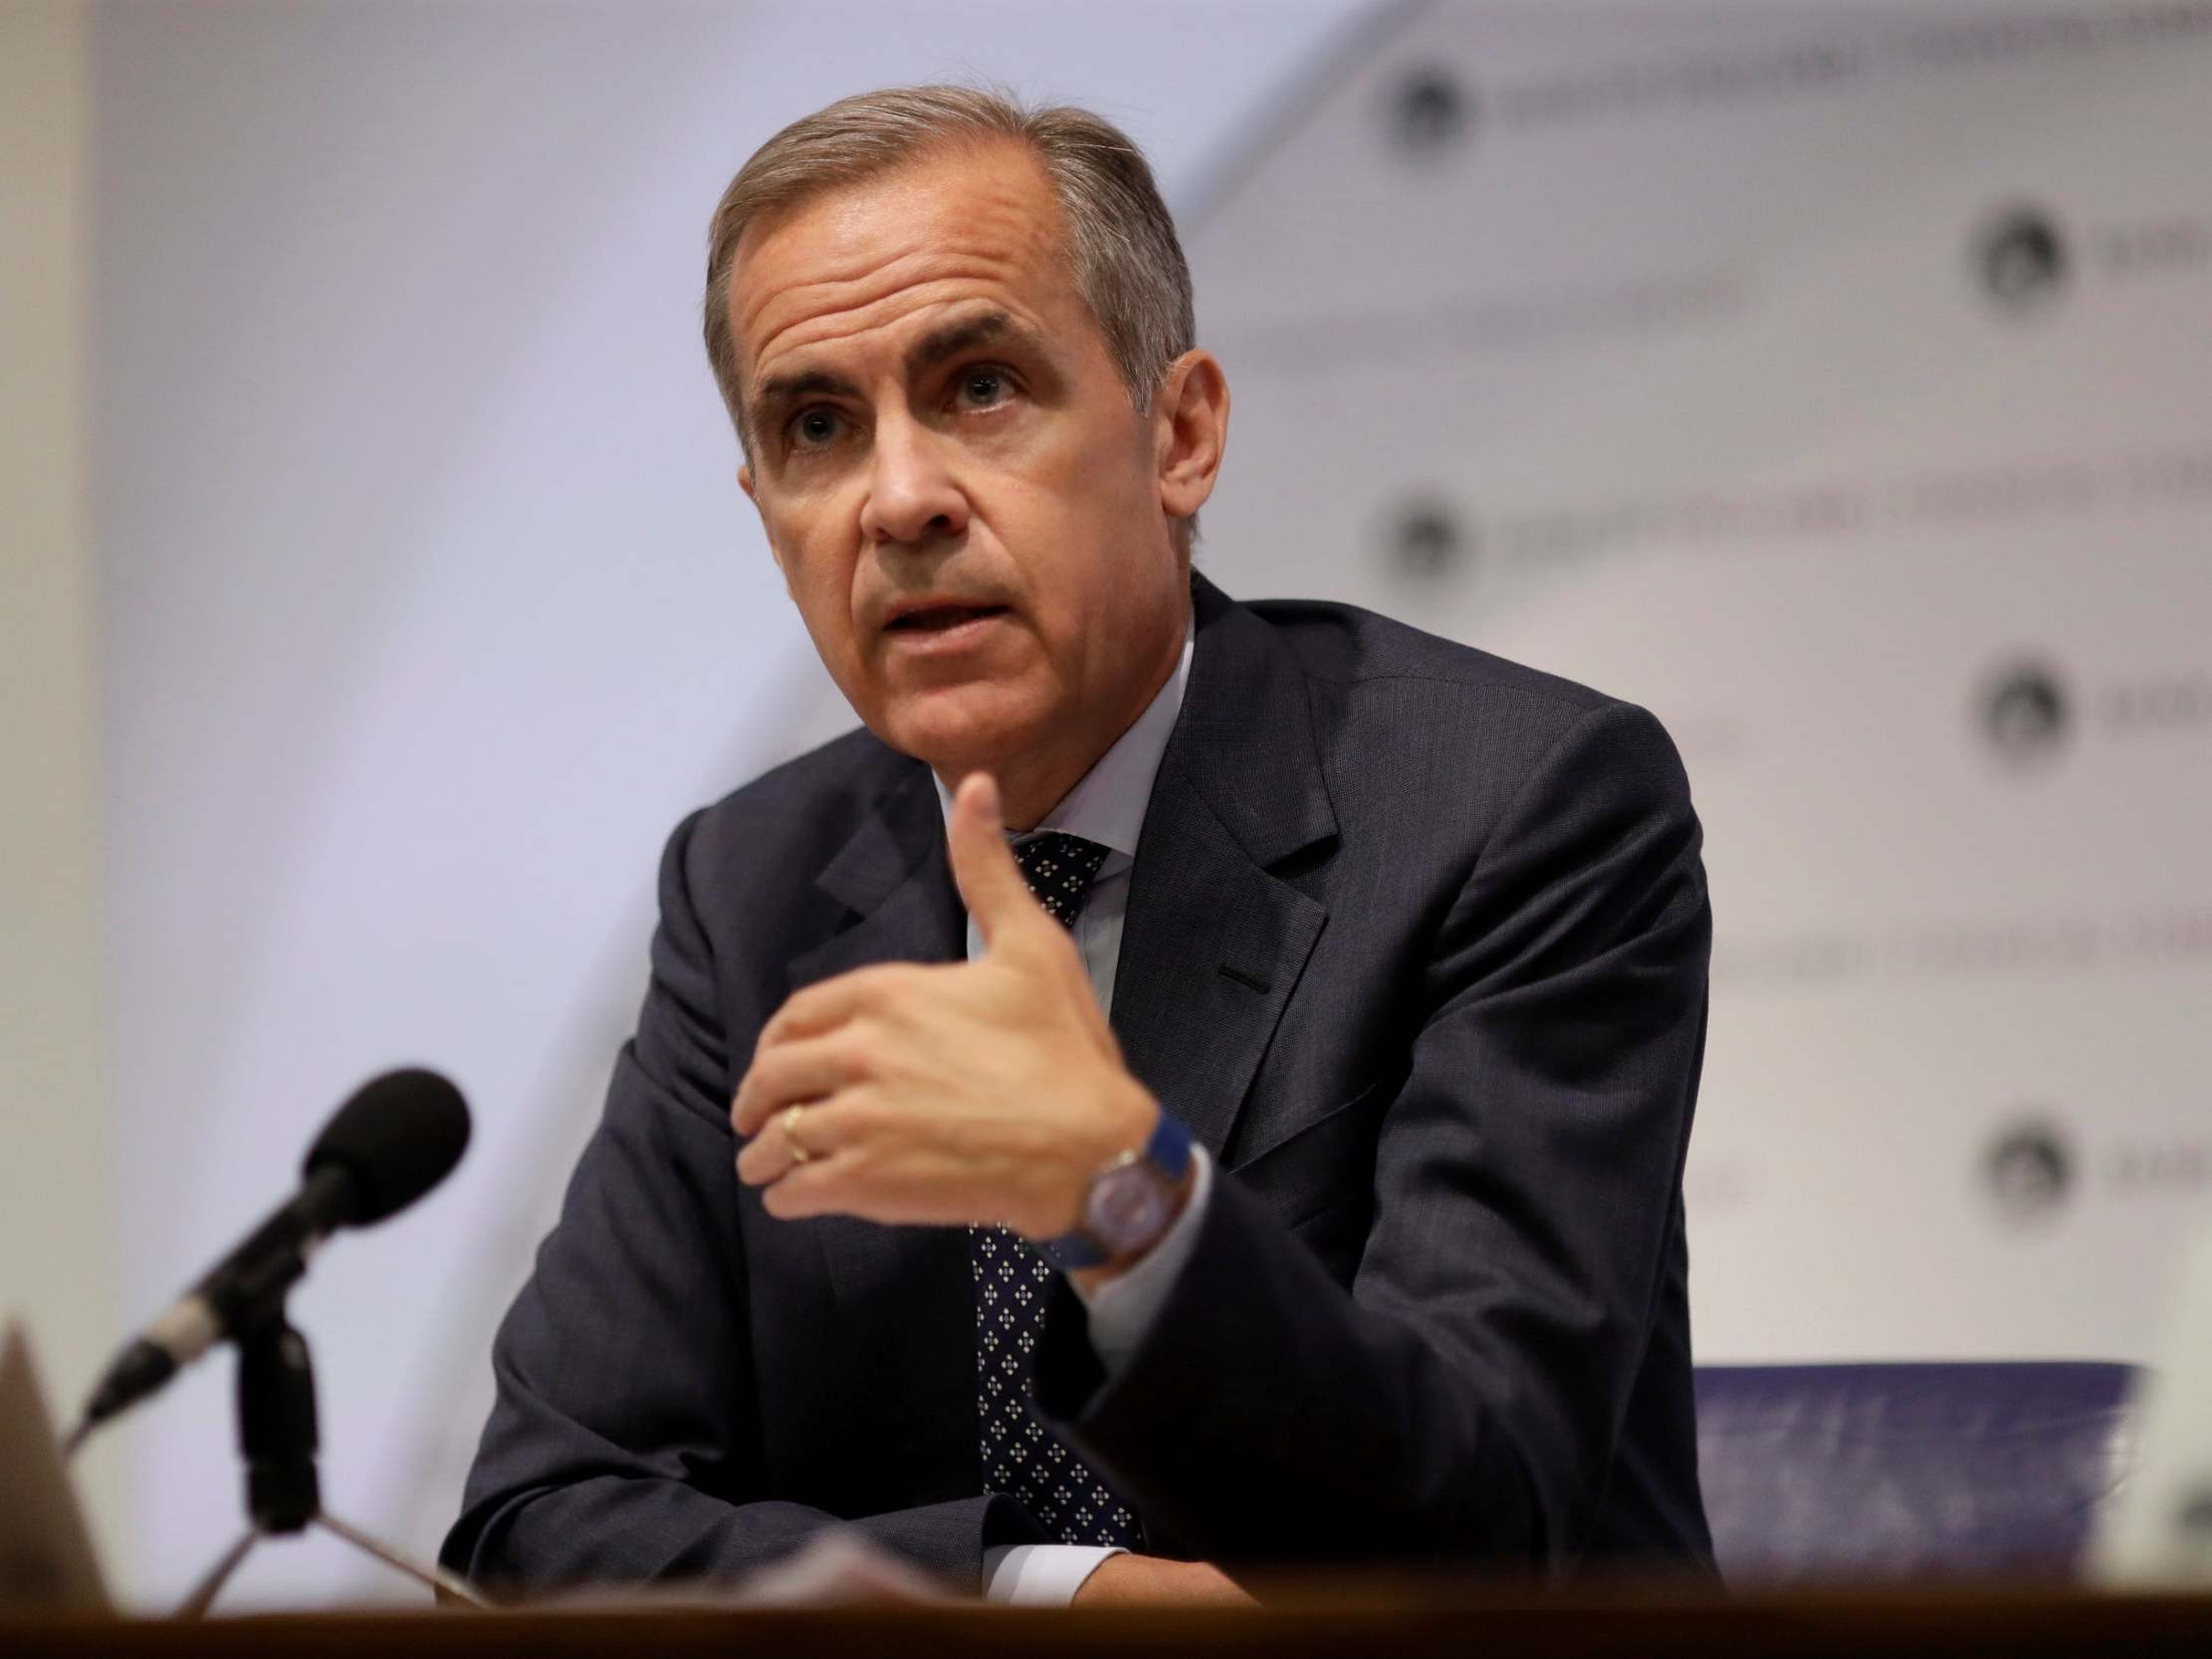 Climate change could render assets 'worthless', Bank of England gove…